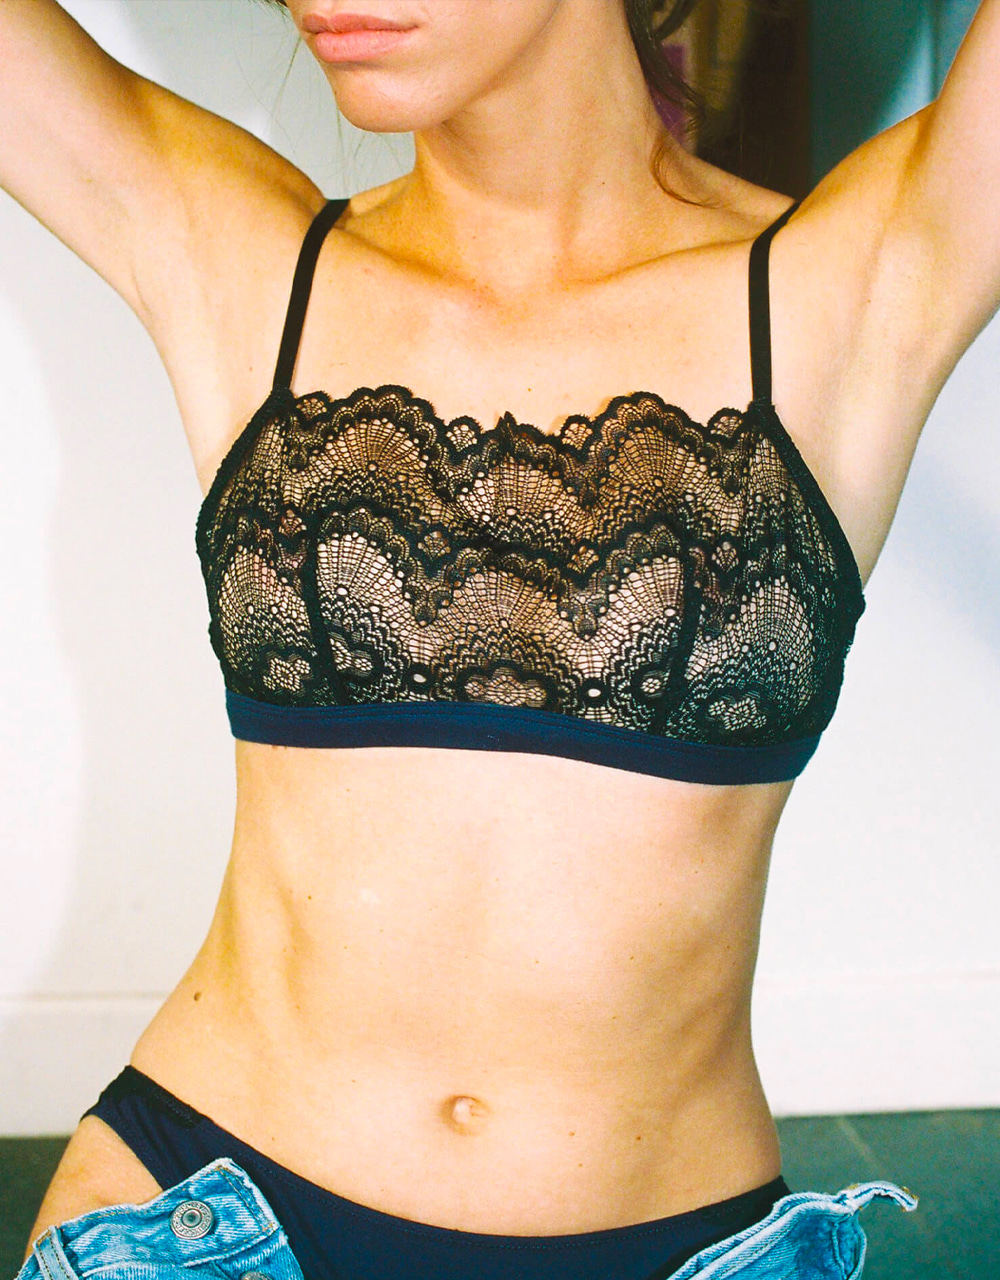 lingerie bra without underwires Gaby Black Iris 39 € Girls In Paris photo 2